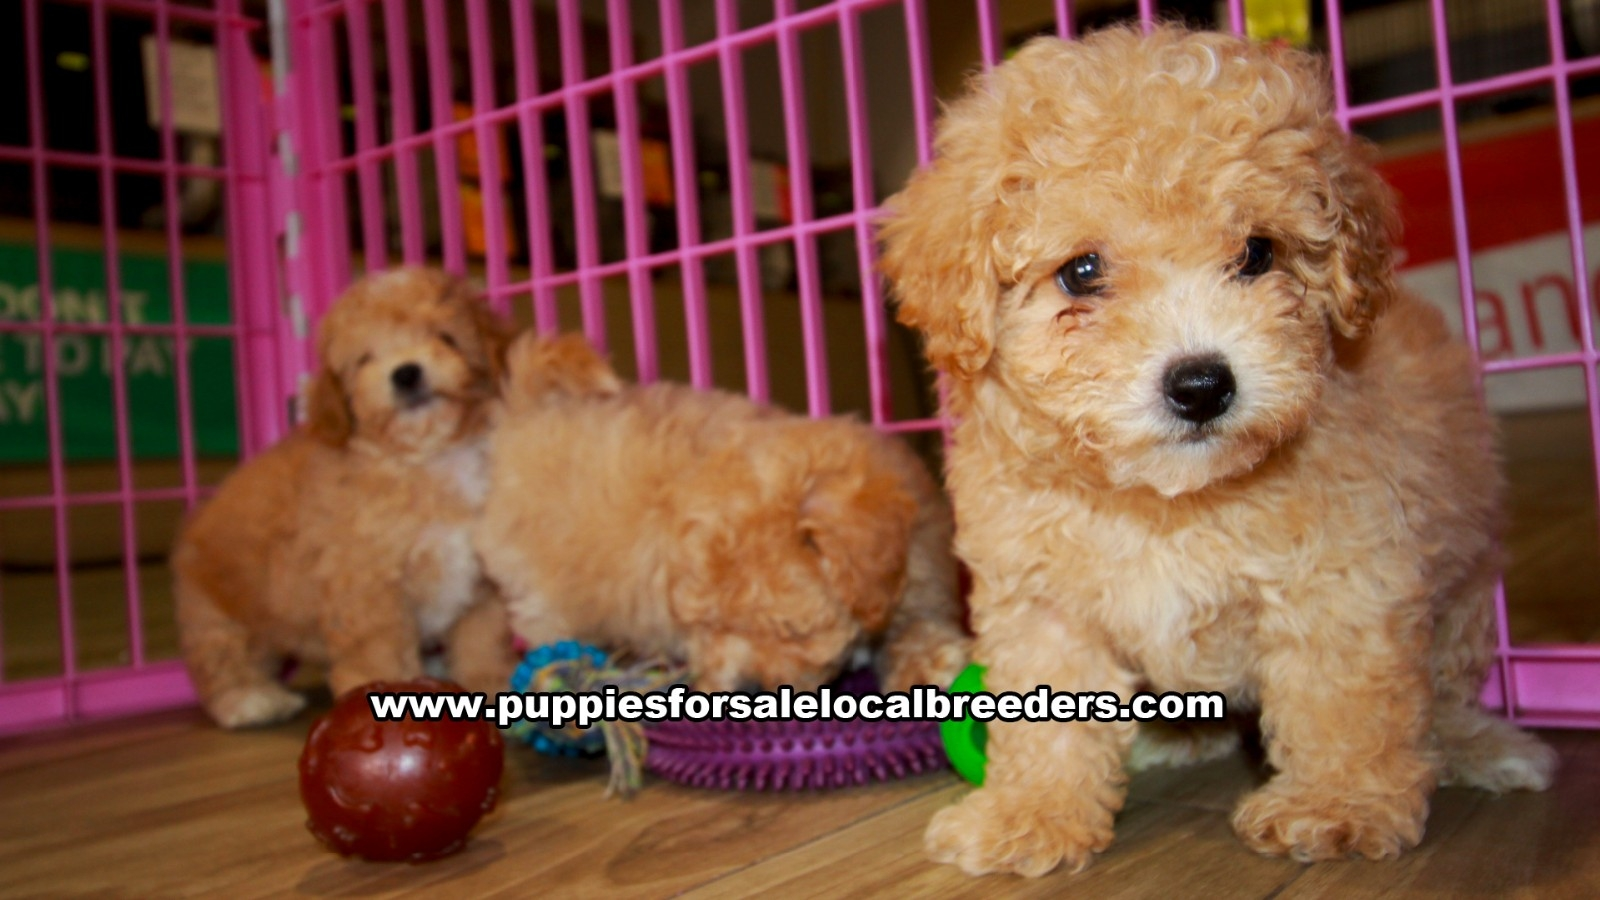 Apricot Bichon Poo, Puppies For Sale In Georgia, Local Breeders, Near Atlanta, Ga